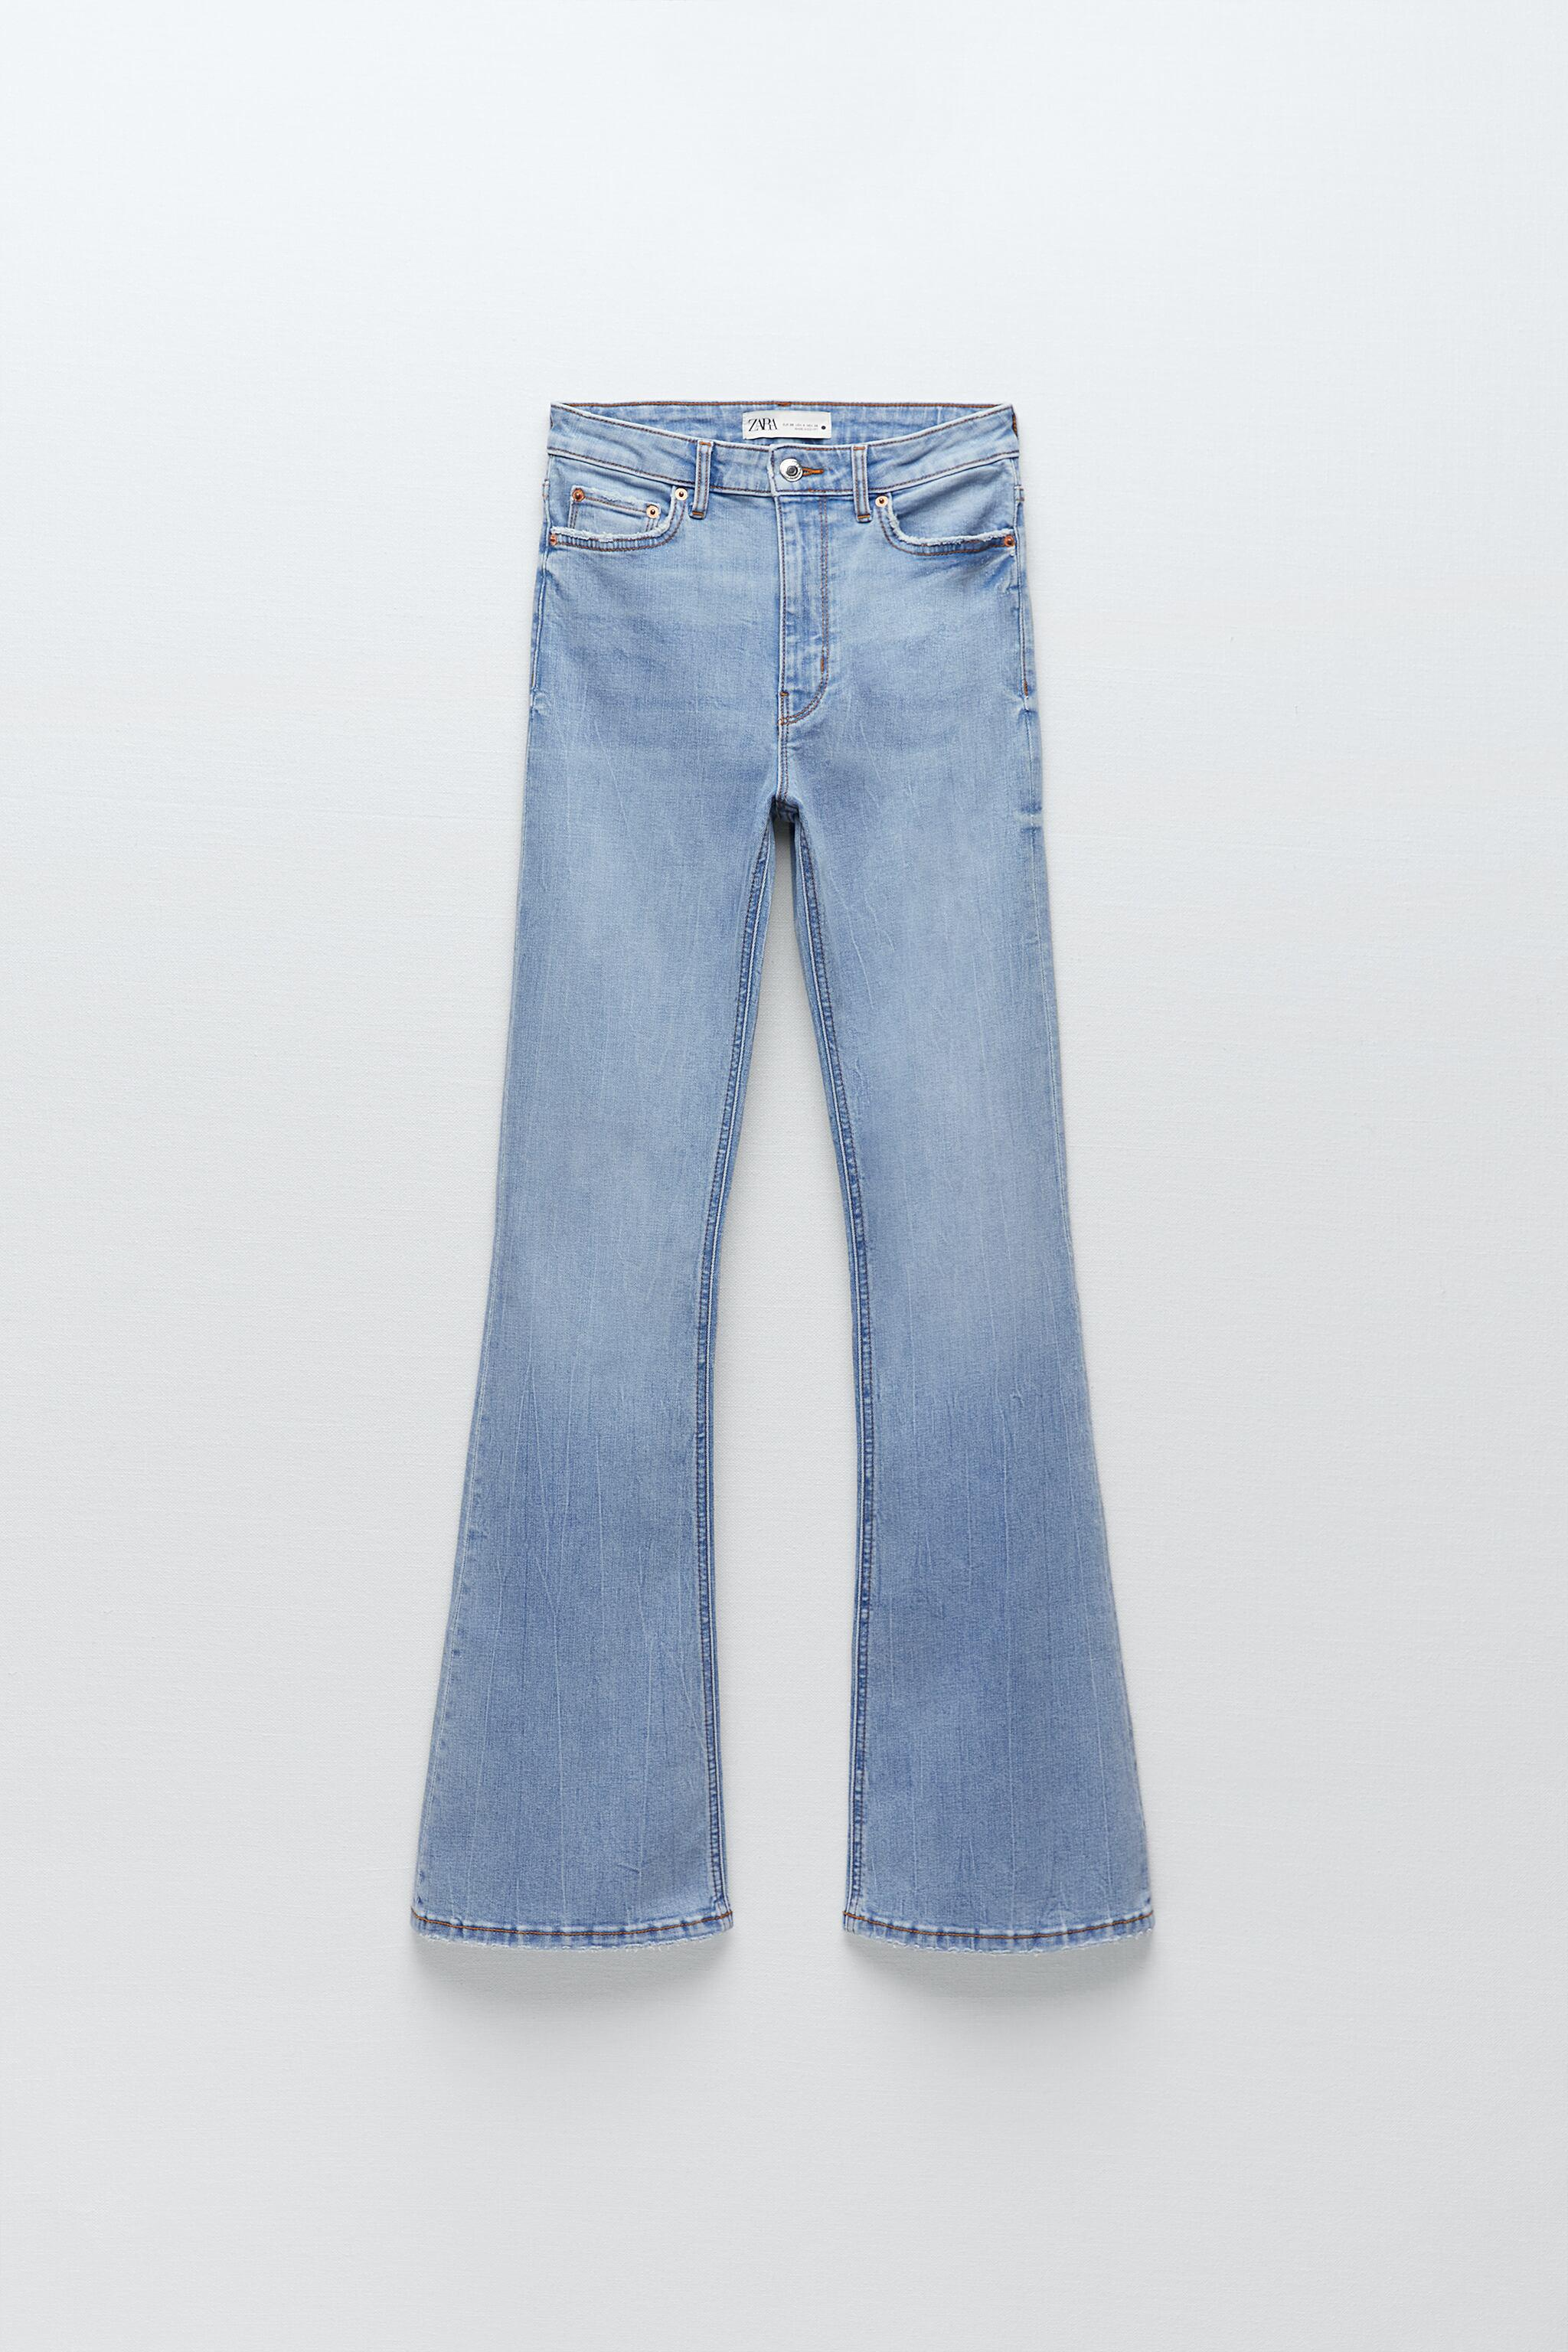 ZW THE SKINNY FLARE JEANS 6